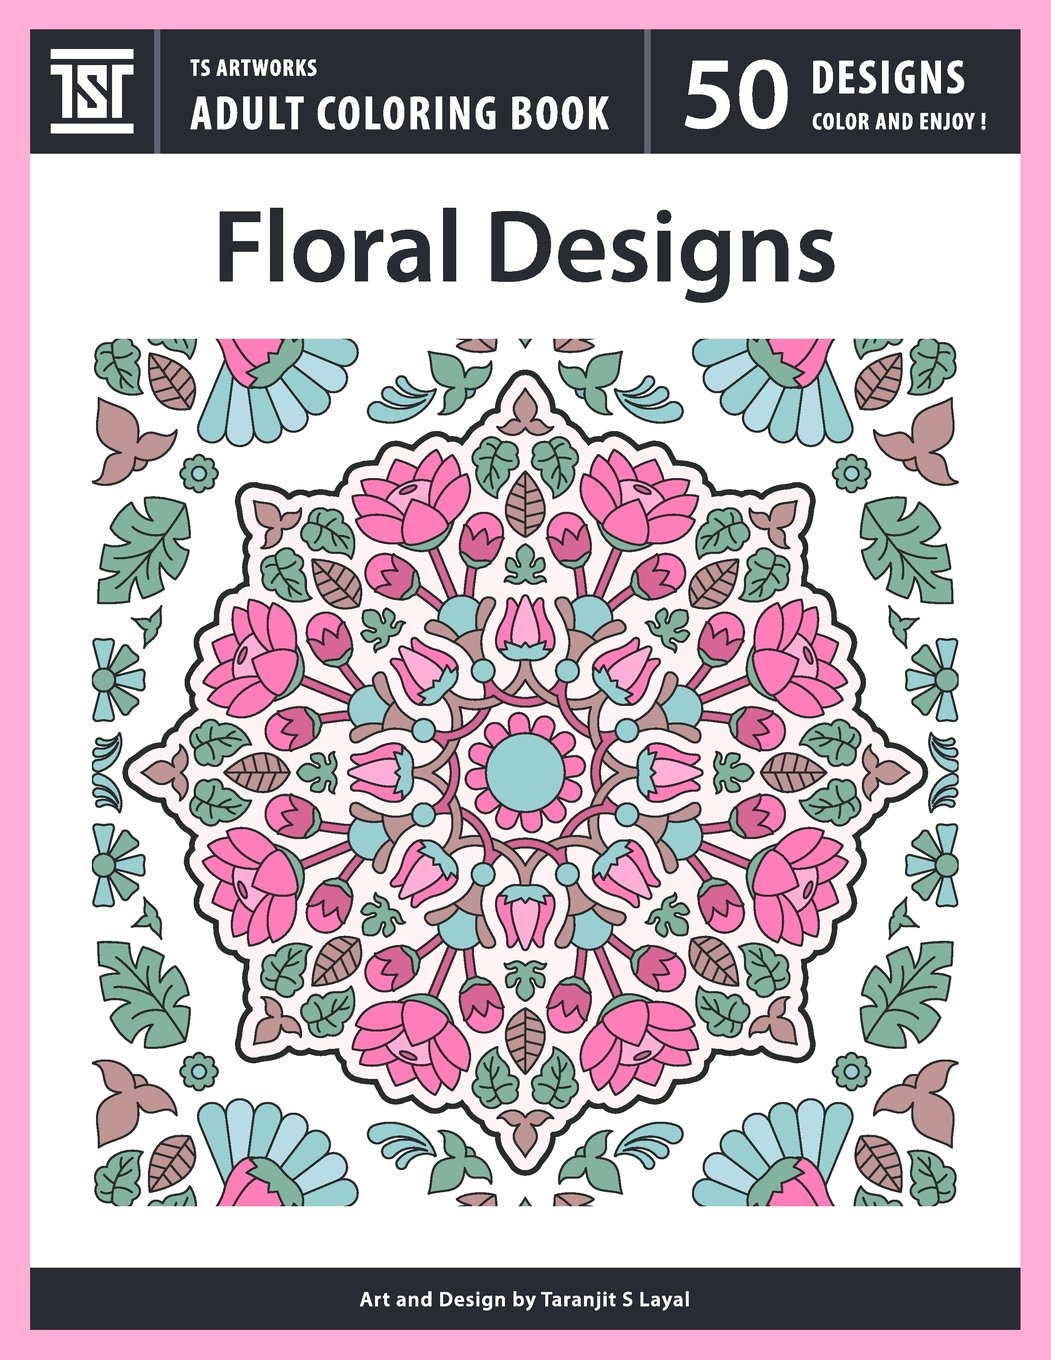 Download Floral Designs: An Adult Coloring Book from TS Artworks (50 Coloring Pages Featuring Flower Designs, Mandalas, Patterns, Birds, Butterflies) Text fb2 ebook